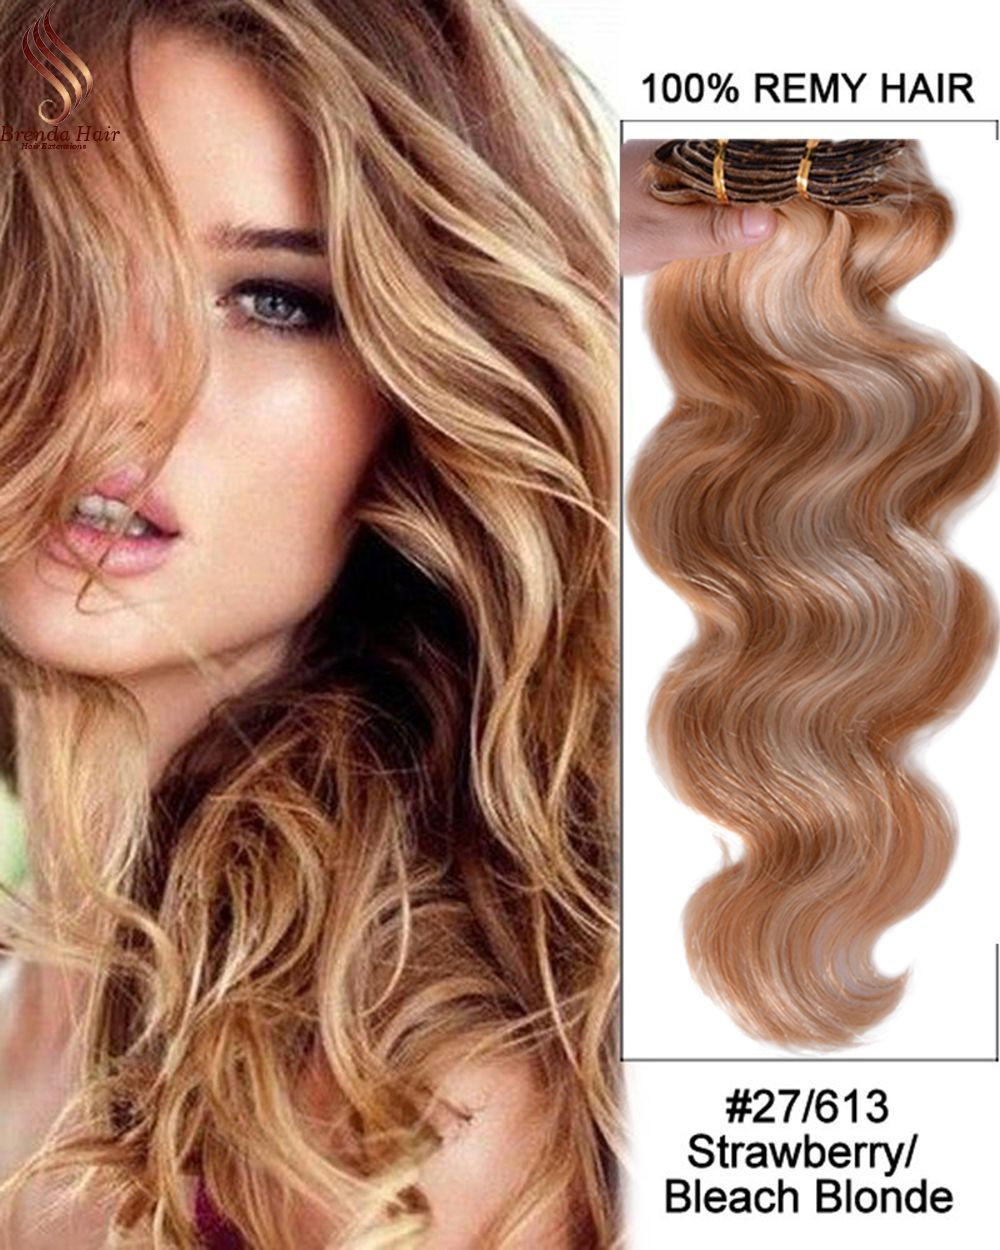 Golden Blonde 27 613 clip in hair extensions 120 Remy human hair extensions  for black women Brazilian virgin human hair Clip-Ins 1393f1d2bc